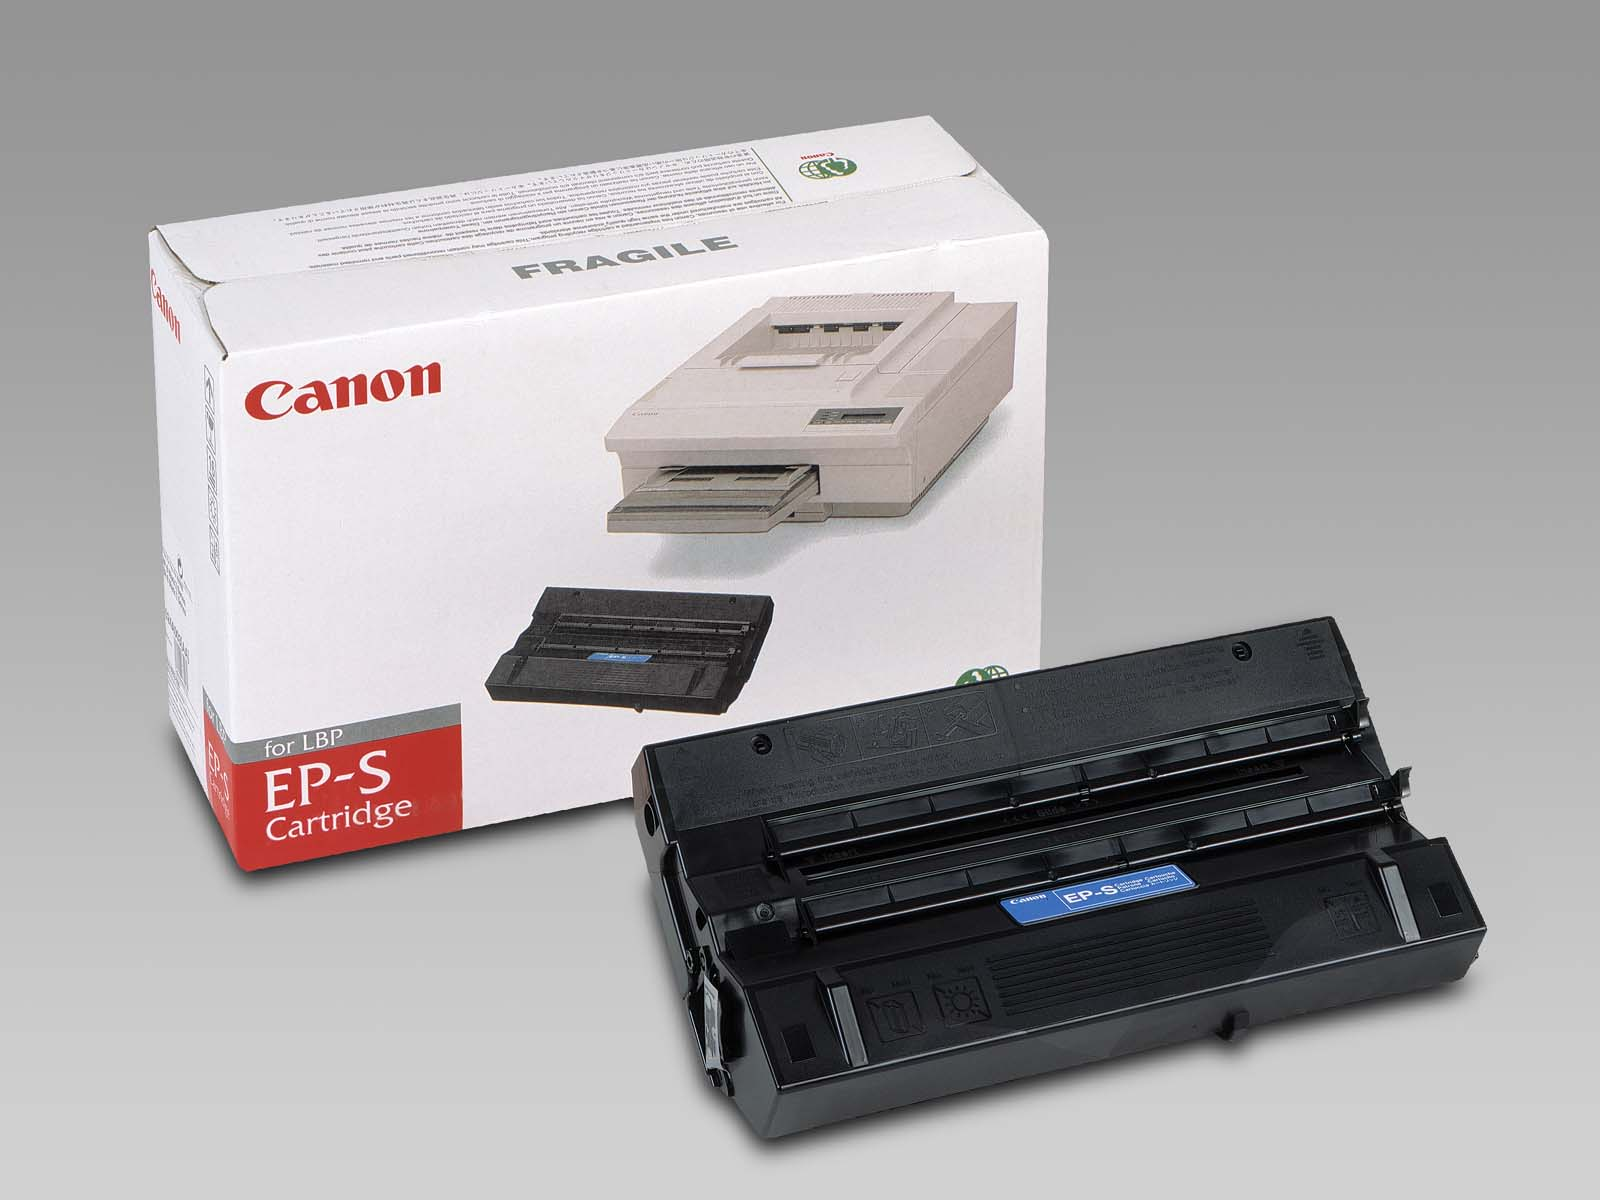 Canon toner cartridge 1524a002 replaces canon r64 0002 150 for 92295a